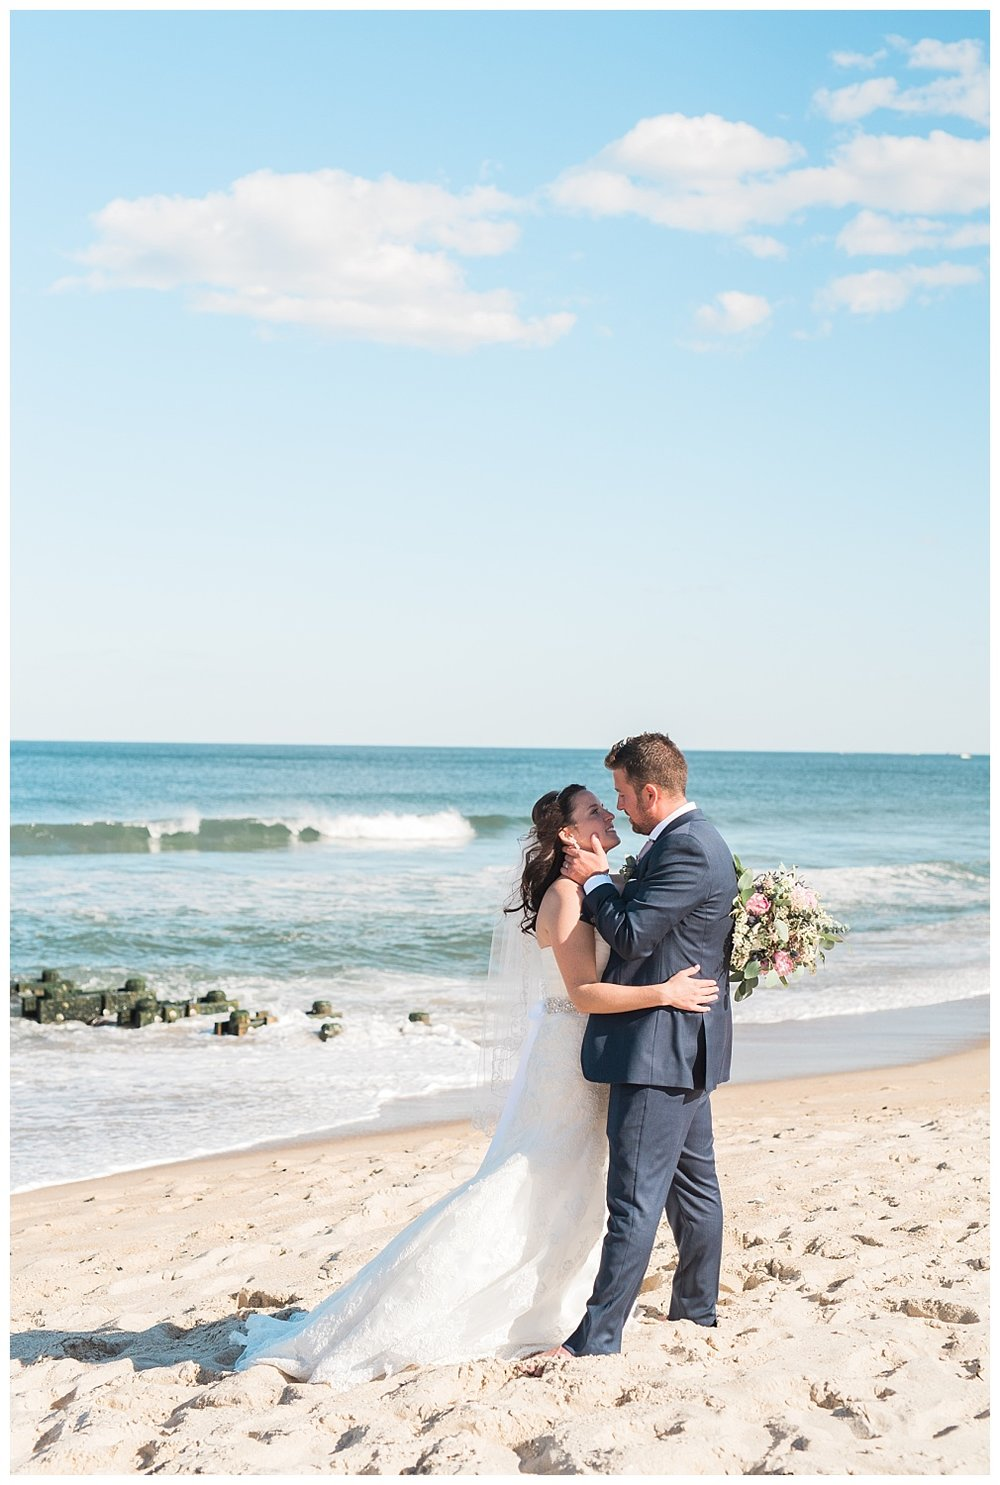 NJ-Spring-Lake-Beach-Wedding-Photographer-Jersey-Shore-Photo-092.JPG